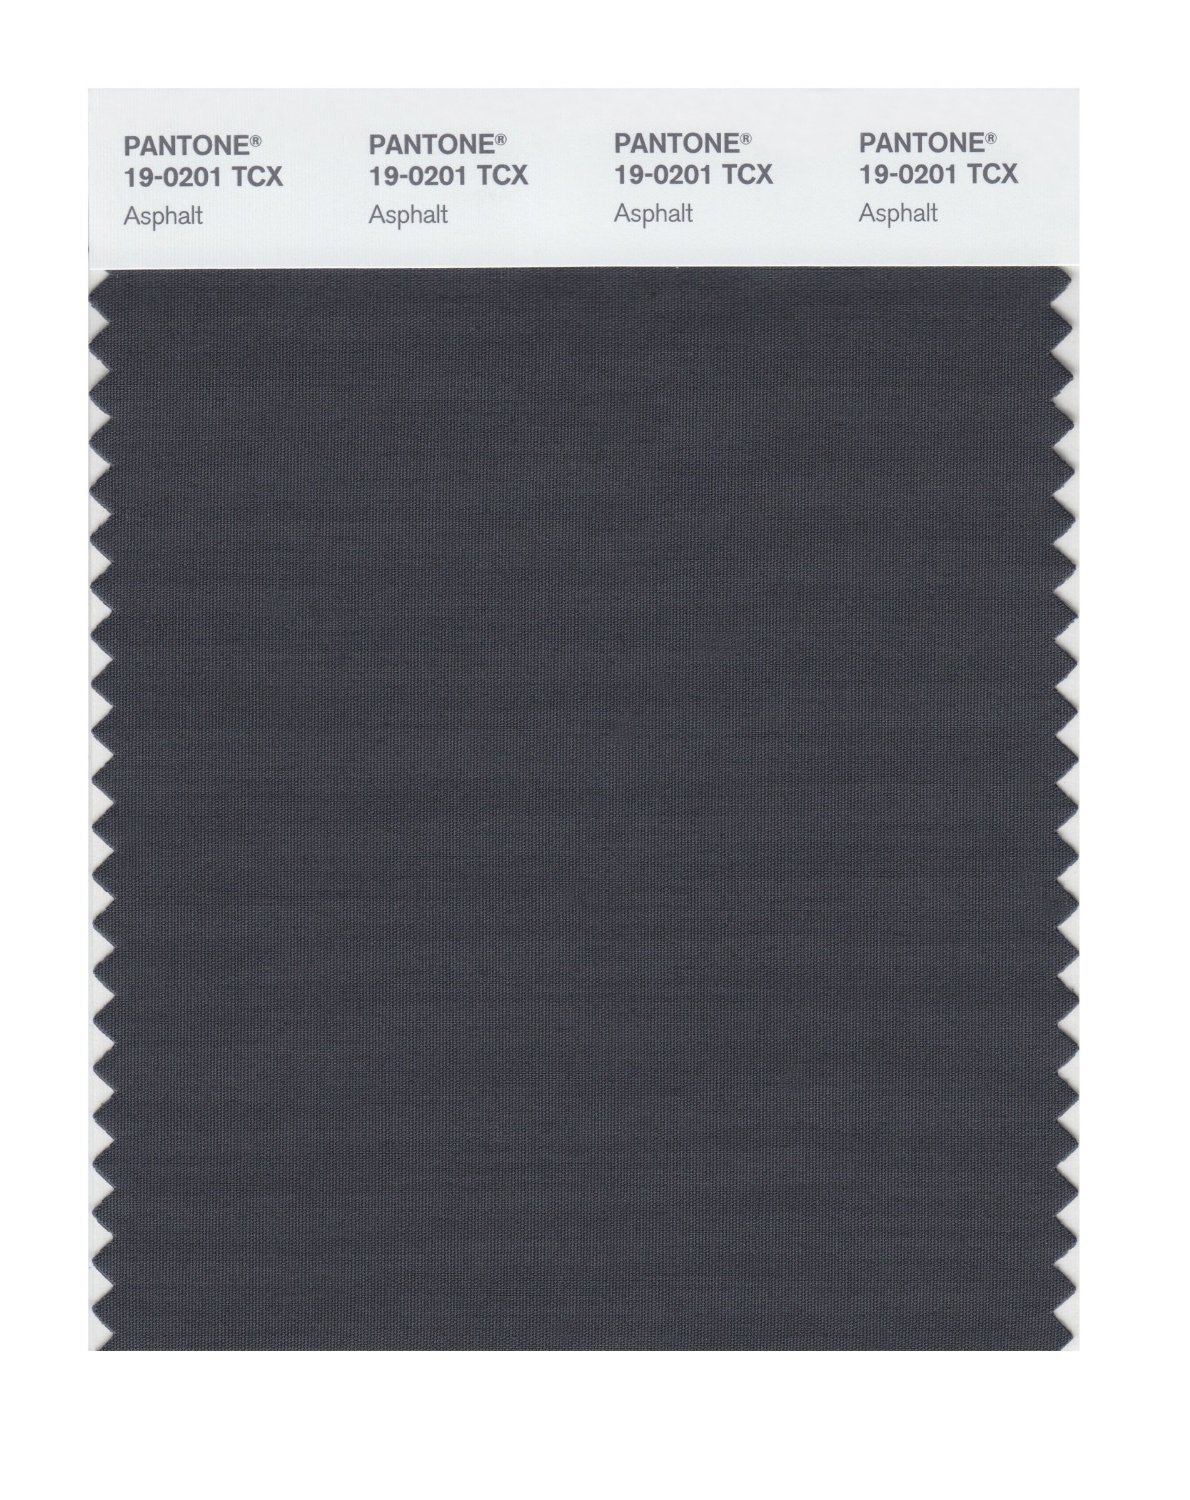 Pantone Smart Swatch 19-0201 Asphalt